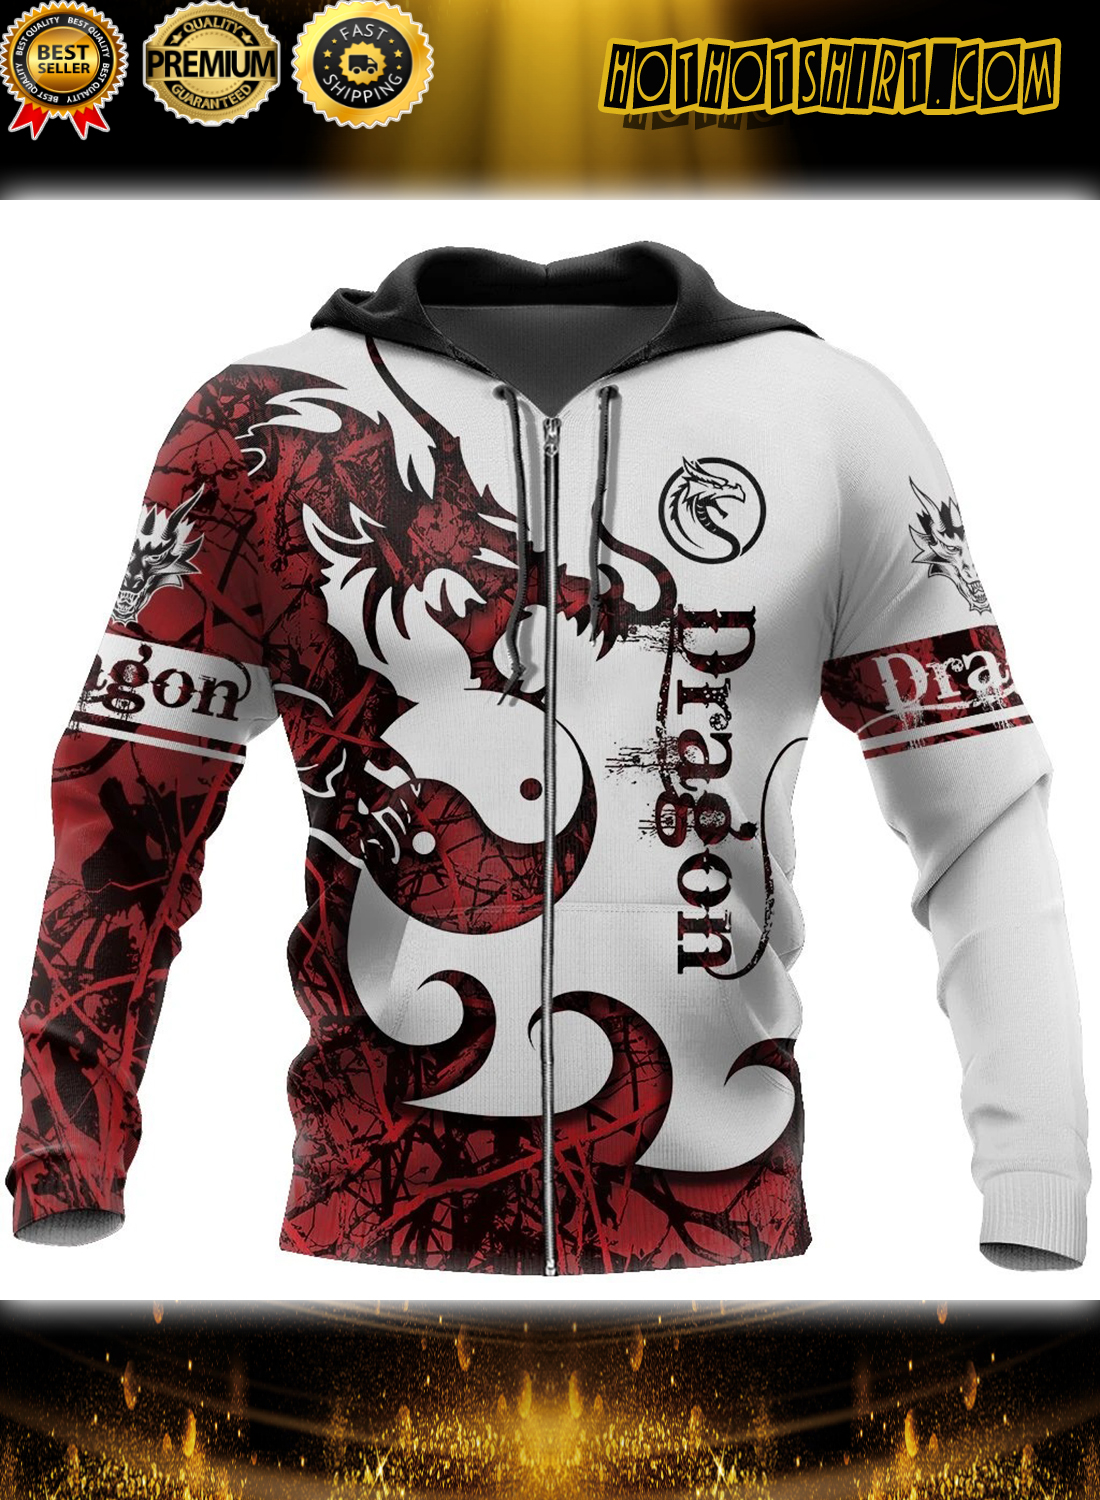 3D Tattoo and Dungeon Dragon Hoodie T Shirt 1